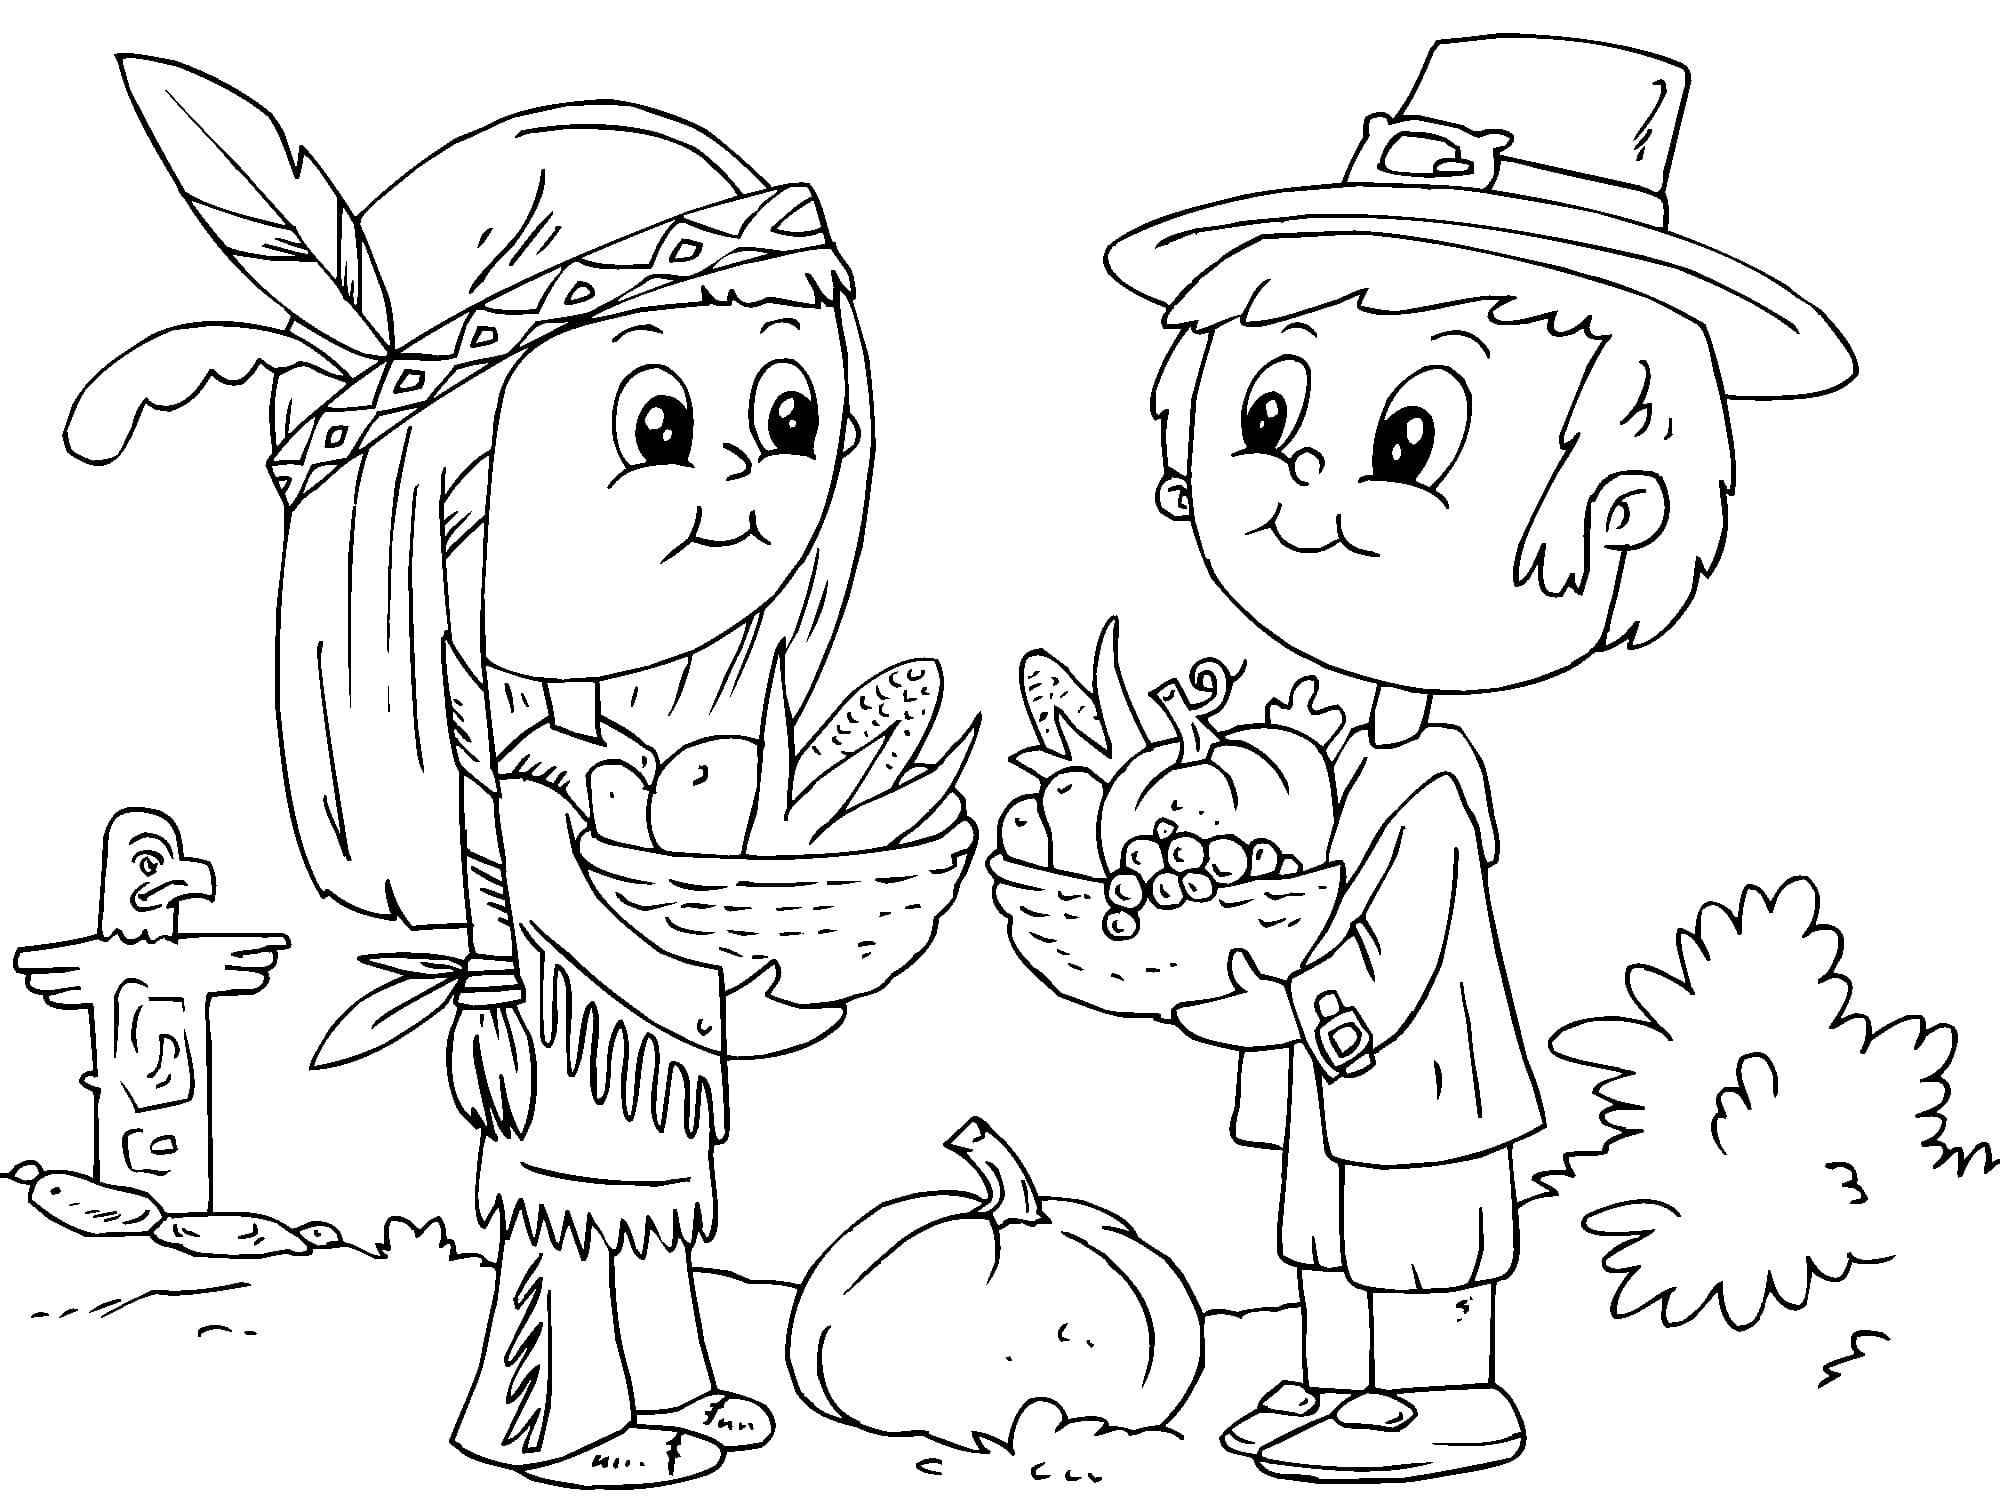 Thanksgiving Coloring Pages. Download or print for free